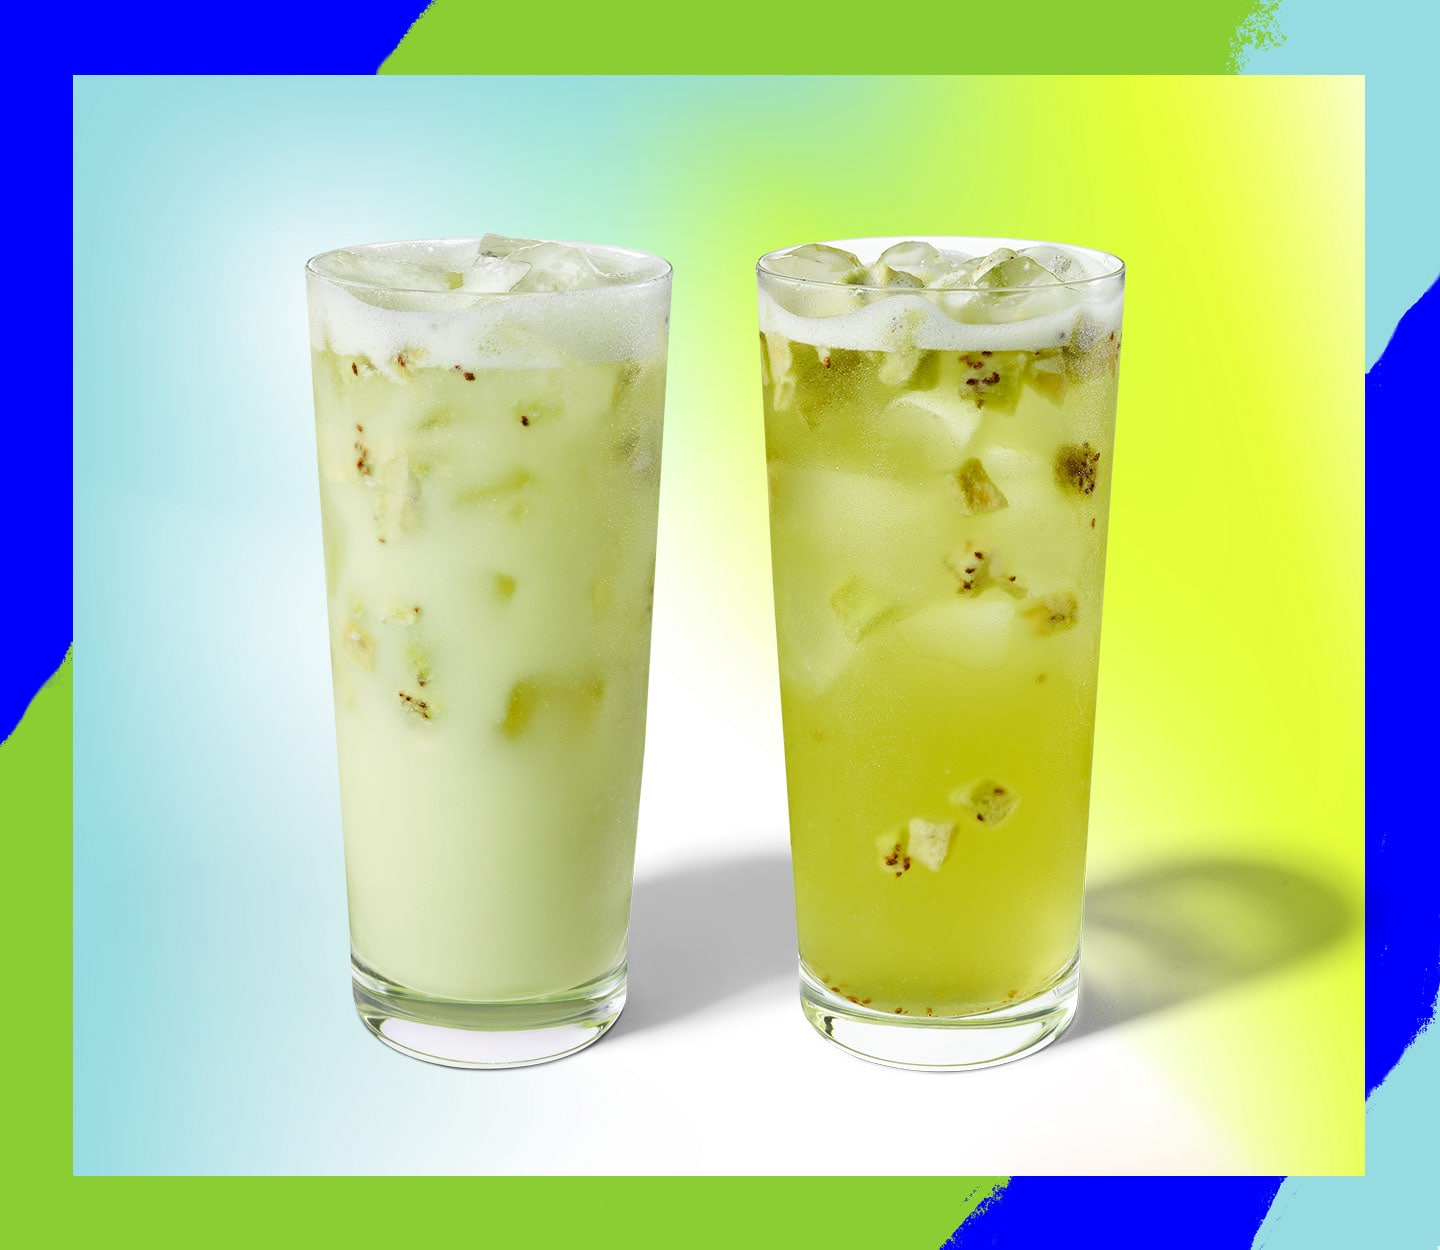 Two iced drinks in identical tall glasses sit next to each other.